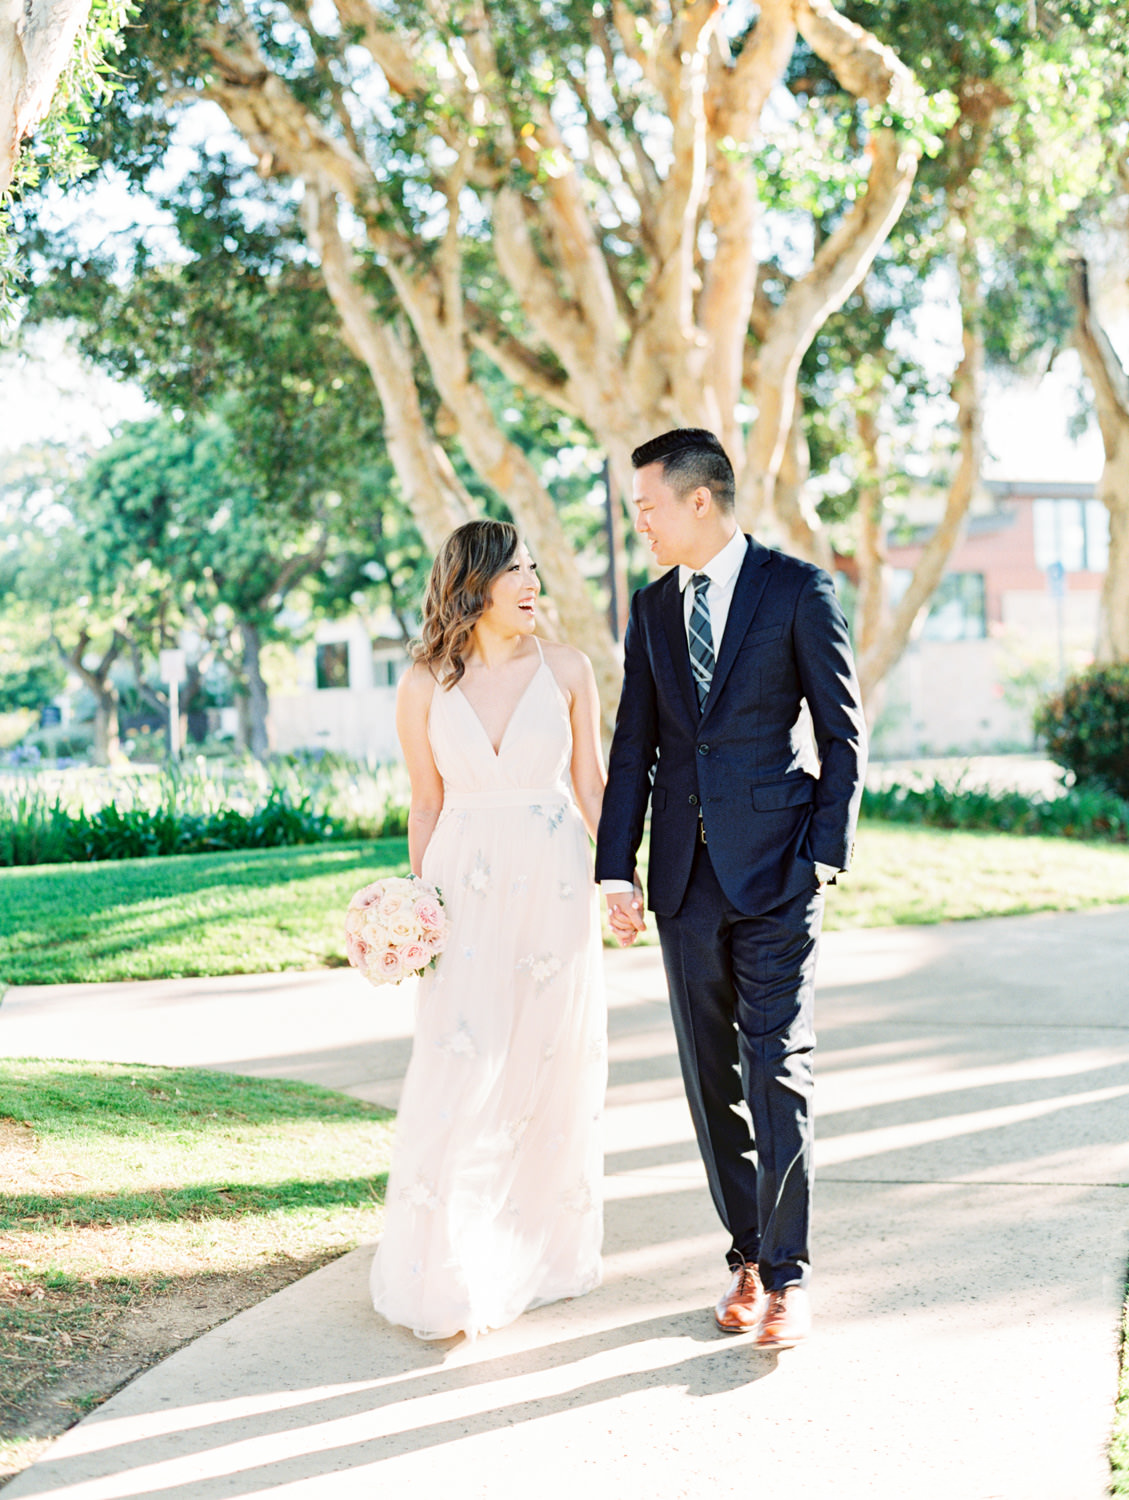 Bride with ivory and blush rose bouquet and floral print dress and groom in suit and tie. Coronado Centennial Park Engagement Photo by Cavin Elizabeth Photography - San Diego film photographer